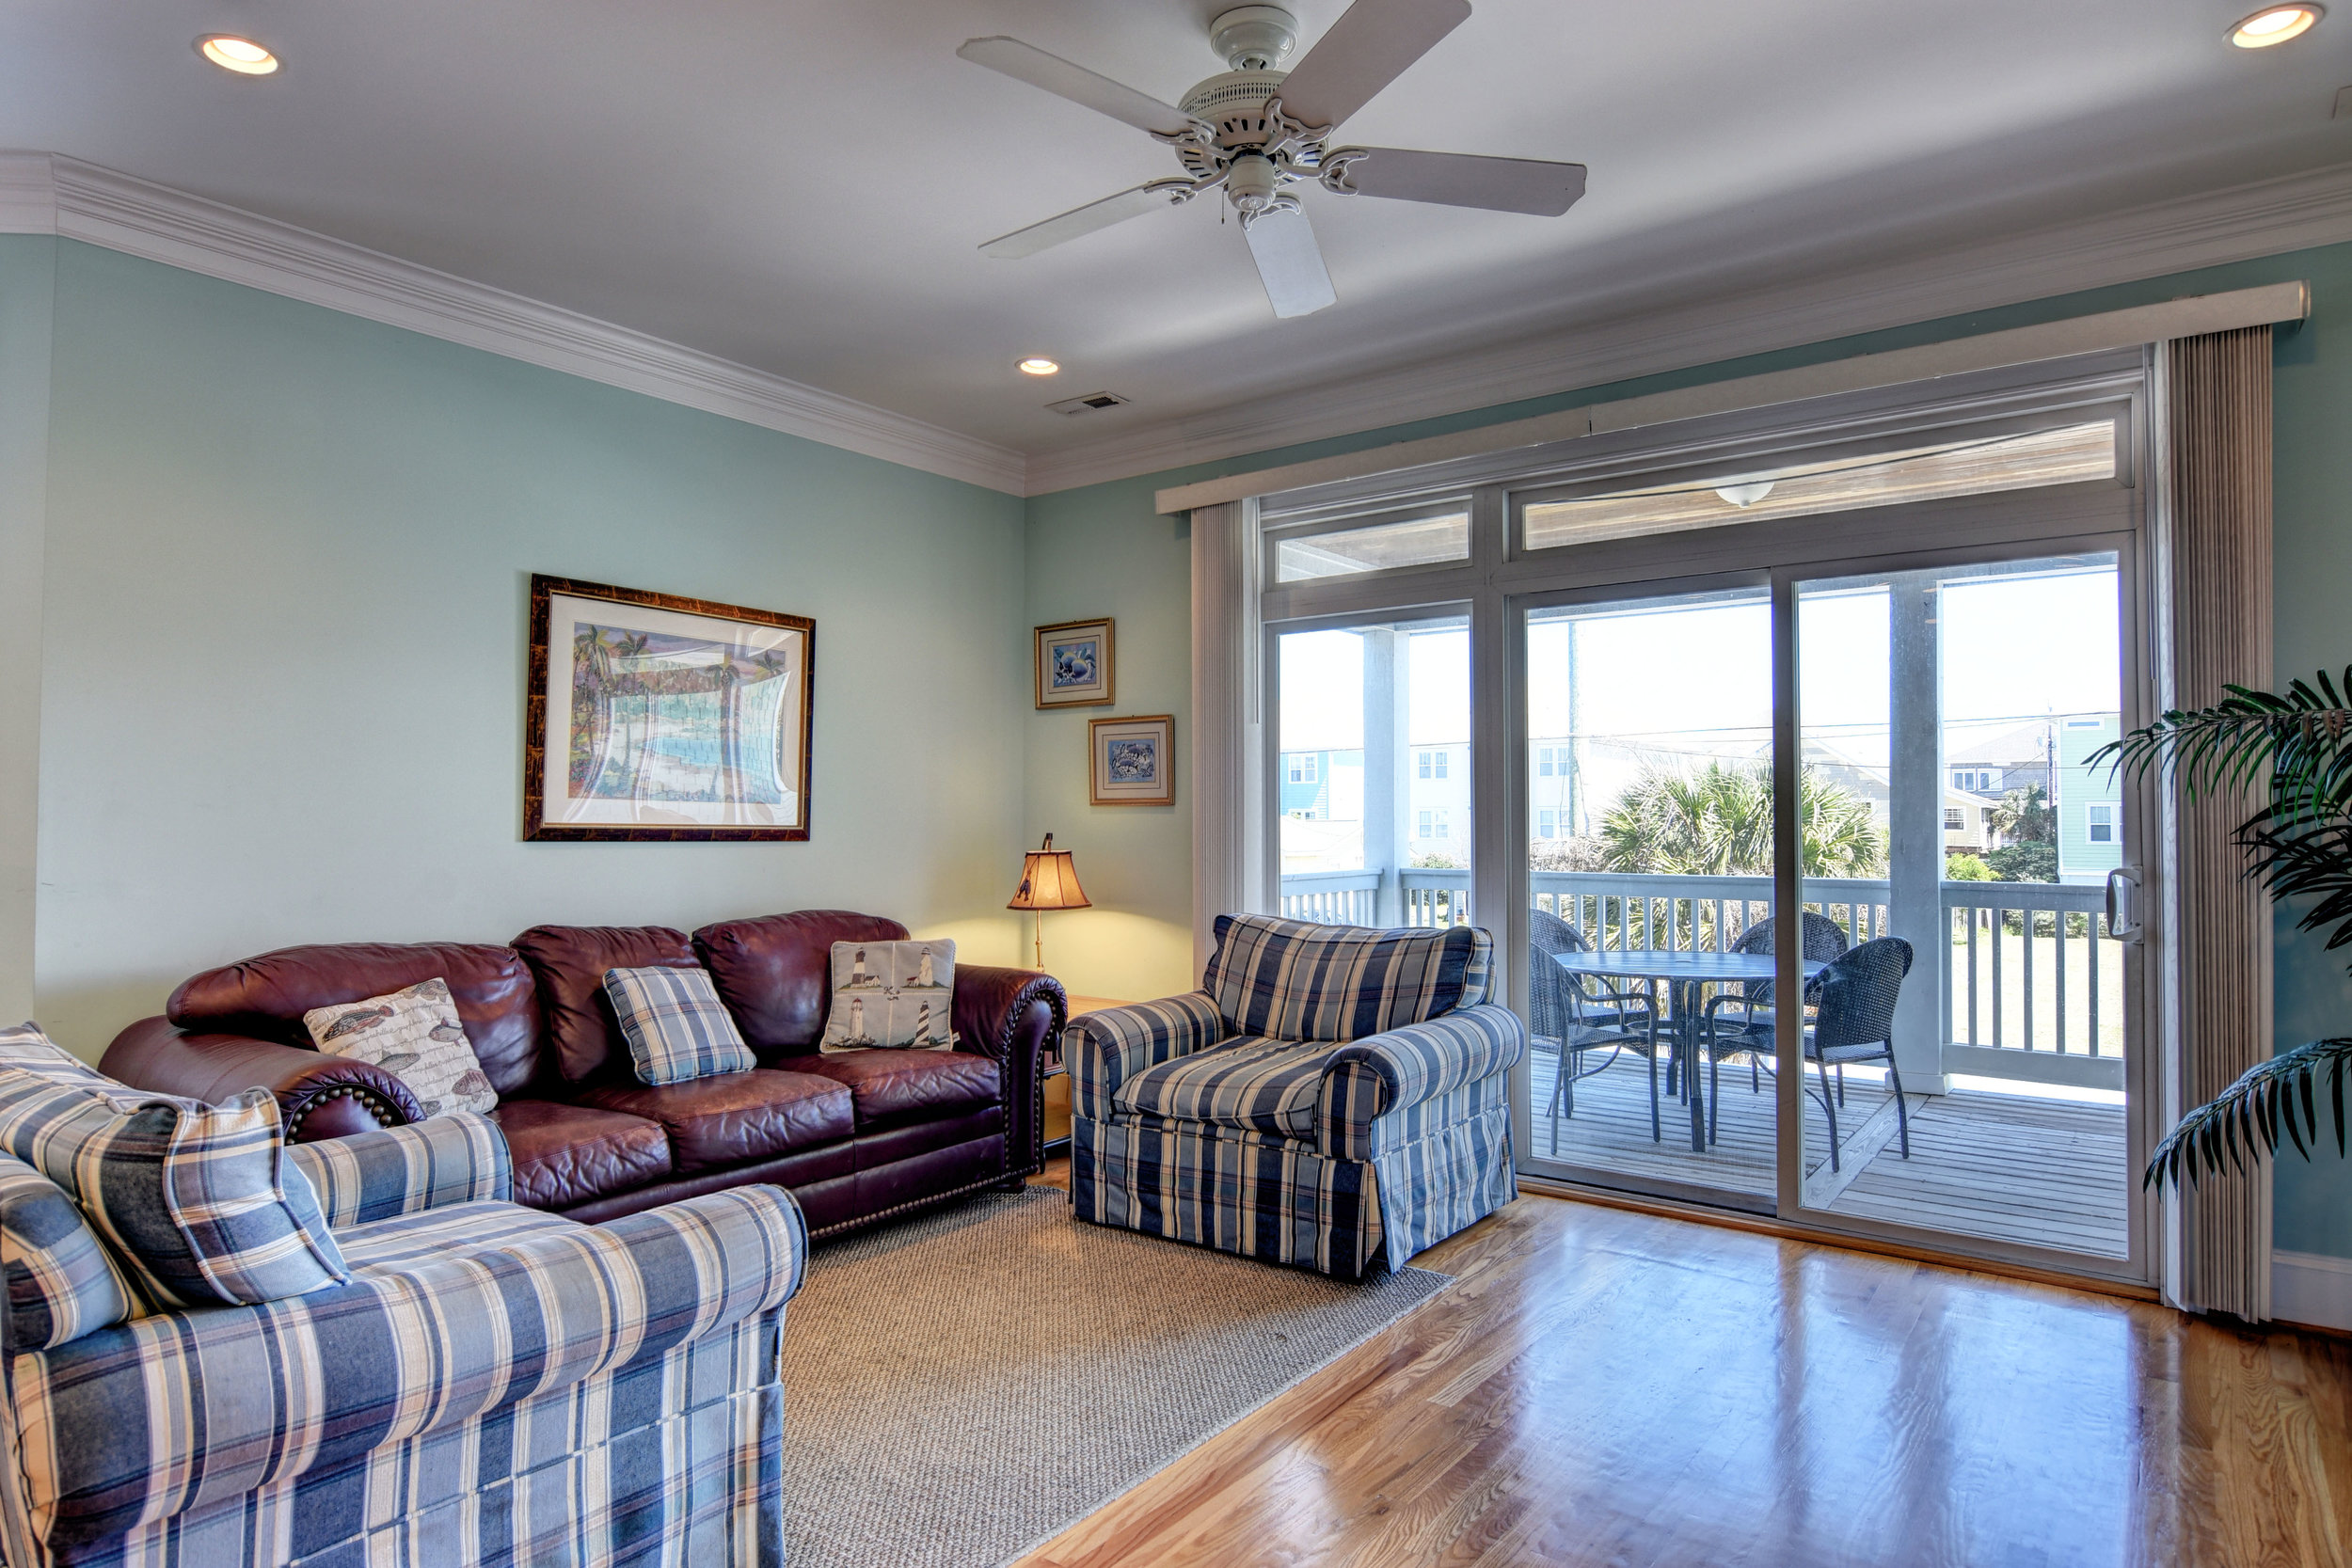 1514 Bowfin Lane Unit 2-print-004-11-Living Room view 2-4200x2800-300dpi.jpg